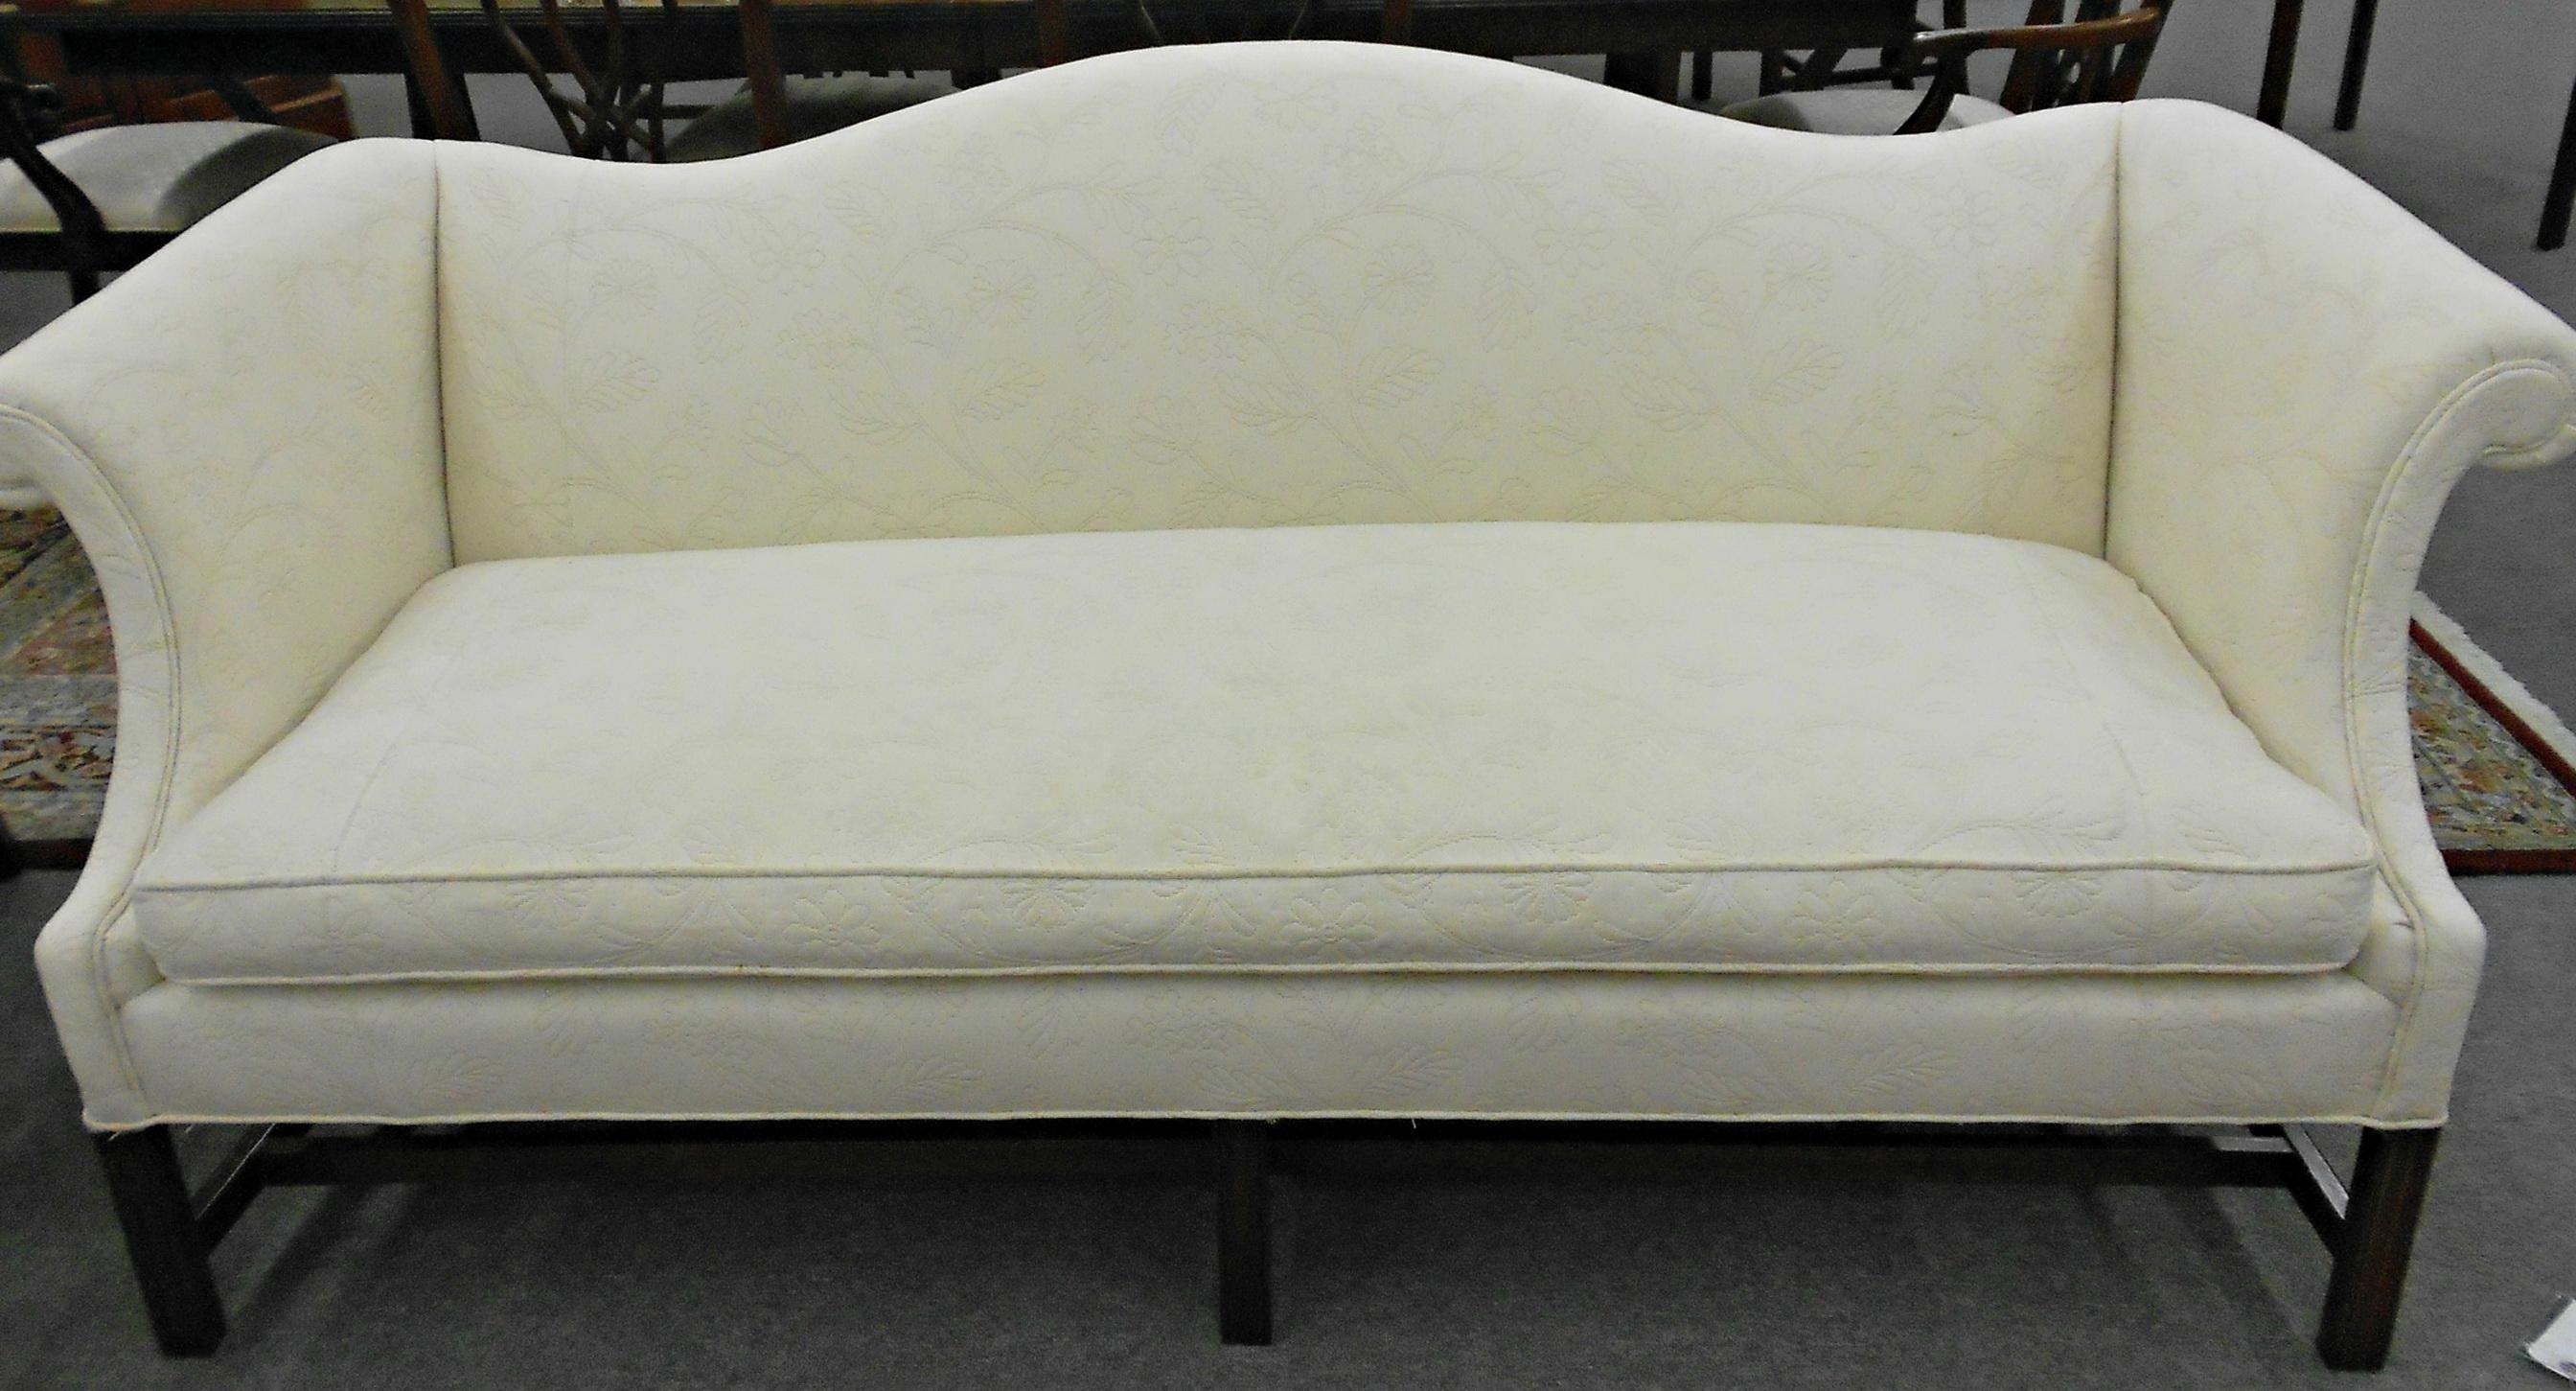 Sofas Center : Sofa White Camel Back Couch Beautiful Slipcover For With Camelback Slipcovers (Image 18 of 20)